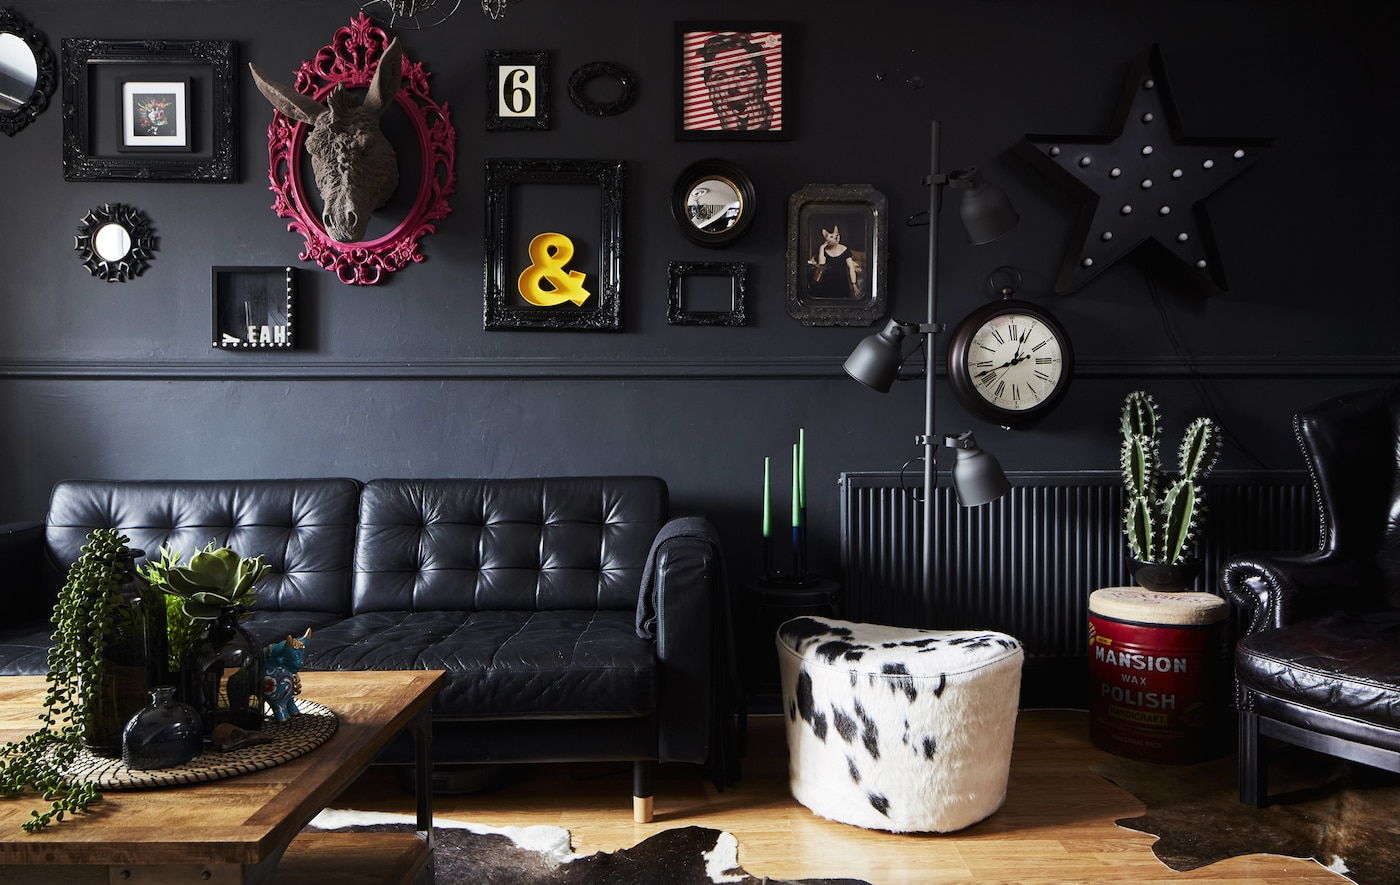 A living room with a black leather sofa and a cowhide footstool in black and white, against a black wall with picture frames.